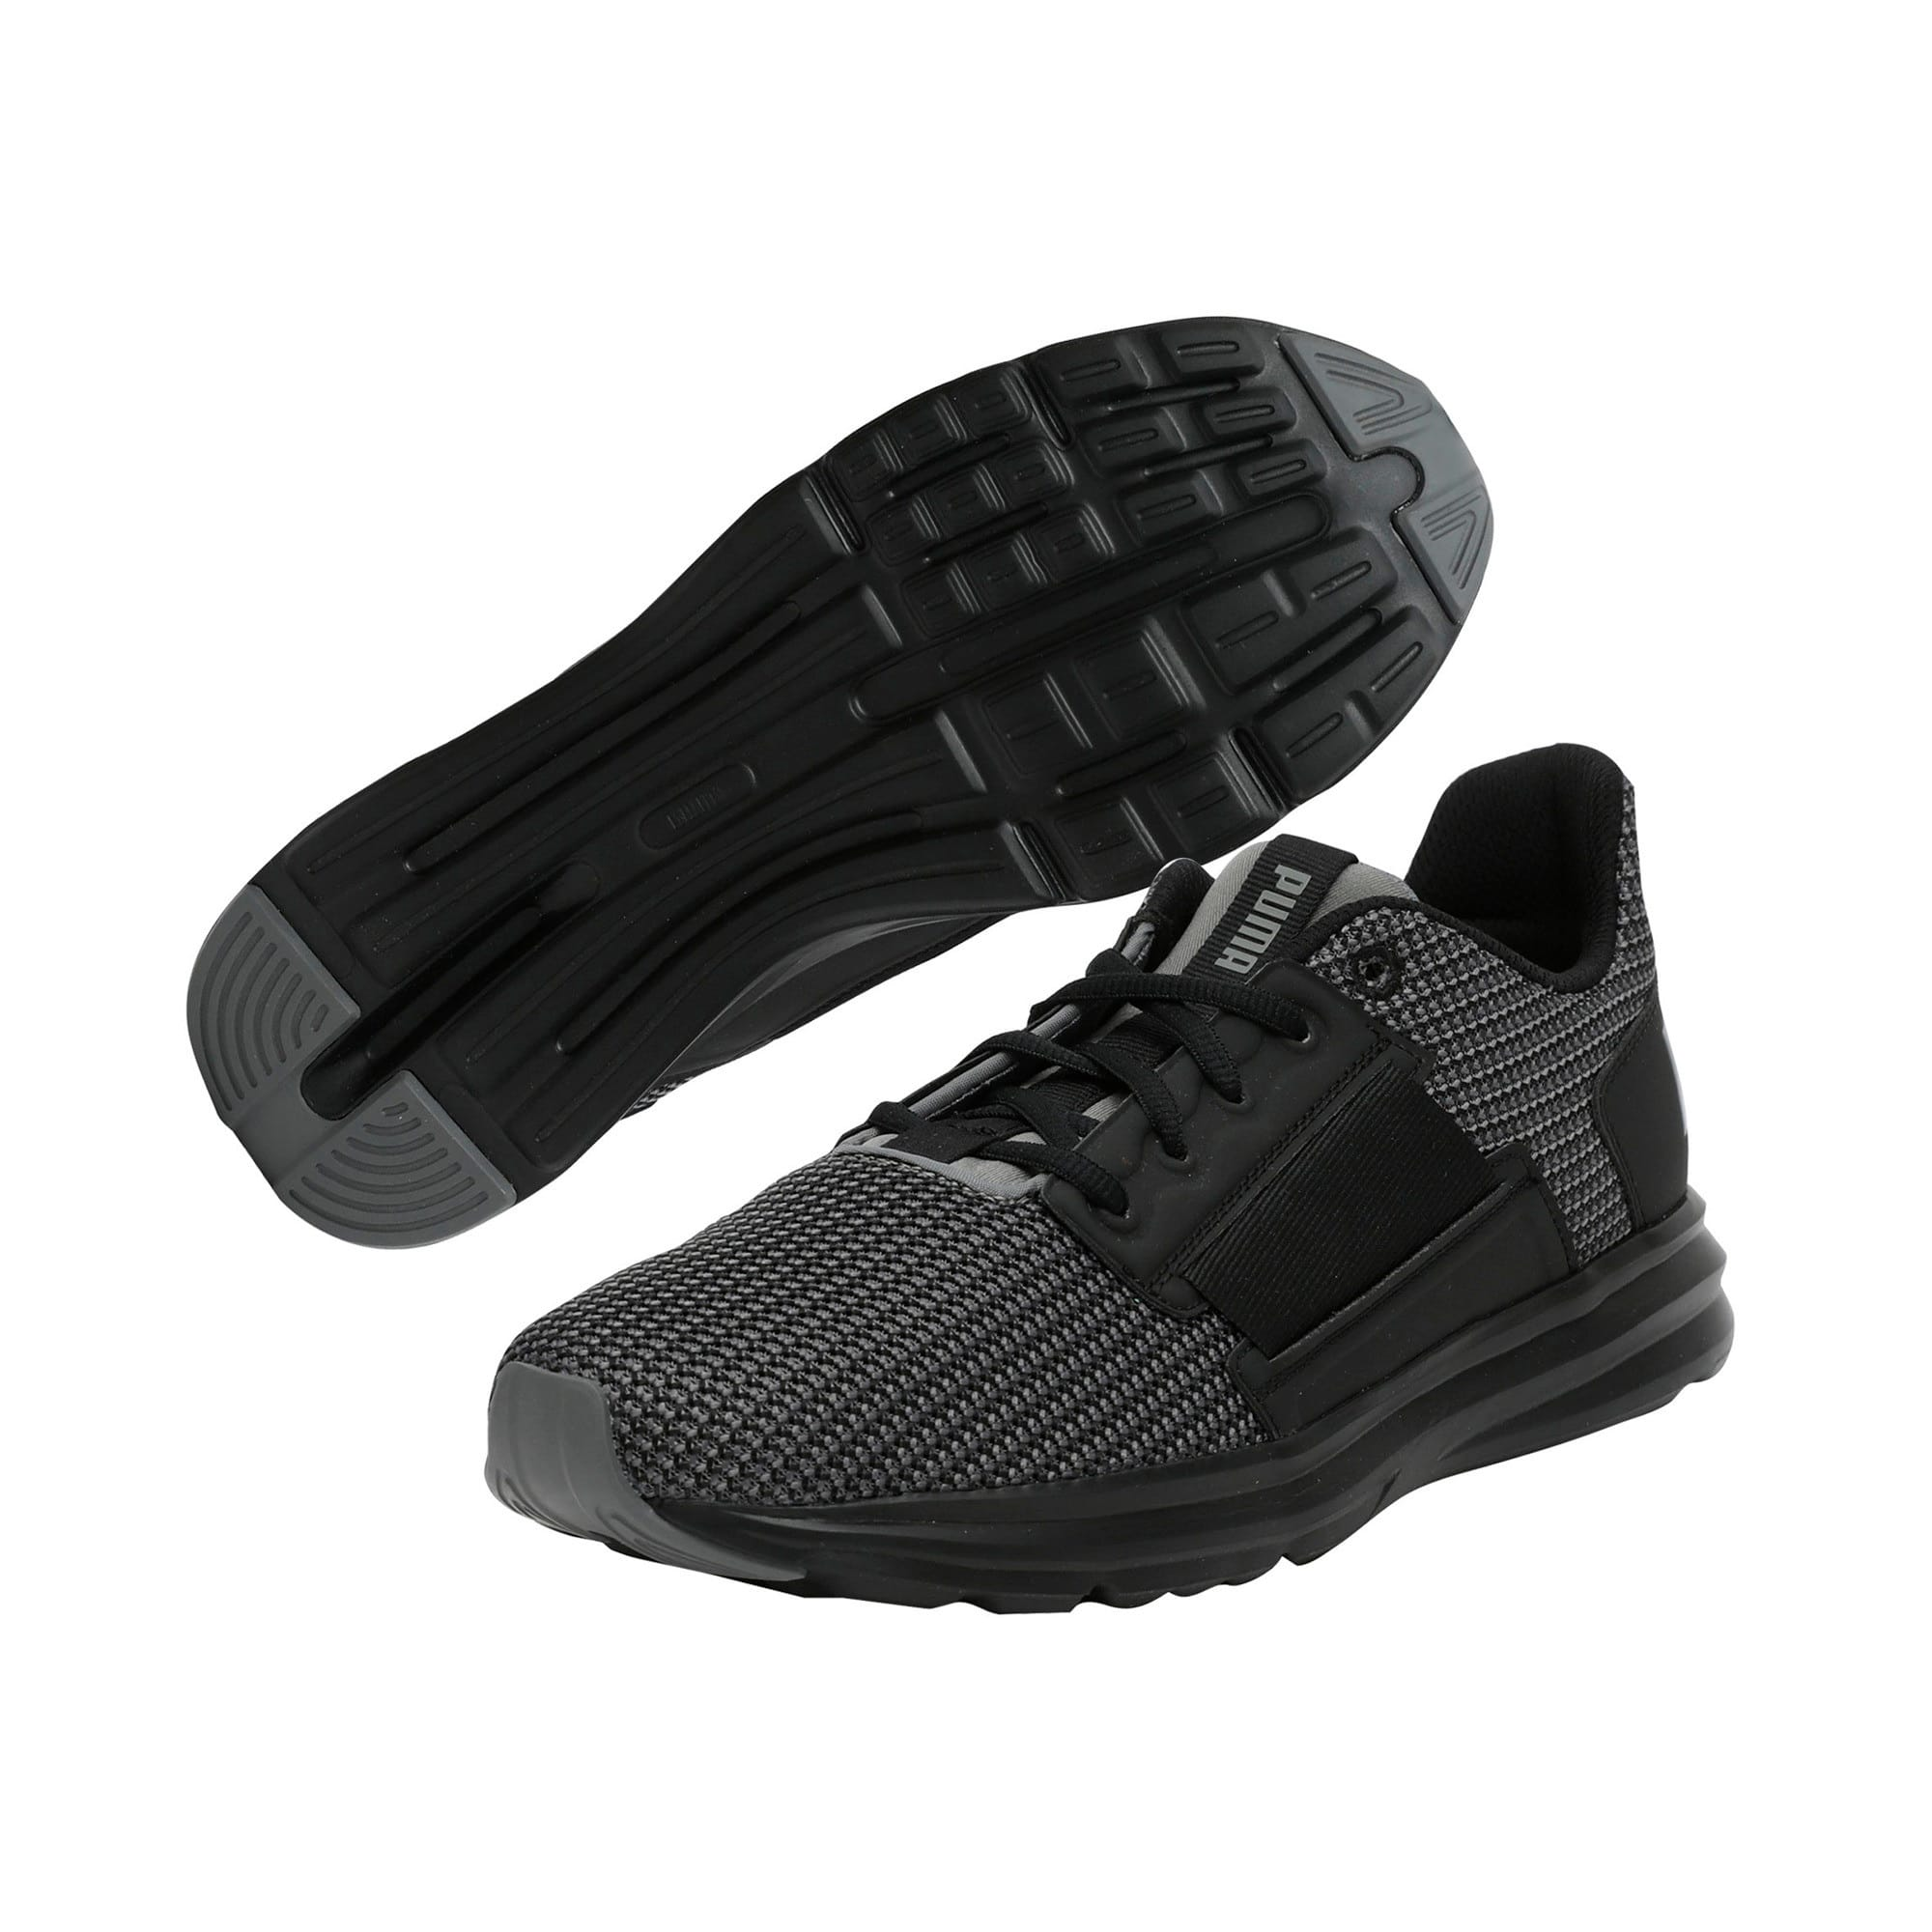 Thumbnail 3 of Enzo Street Knit Men's Running Shoes, QUIET SHADE-Puma Black, medium-IND